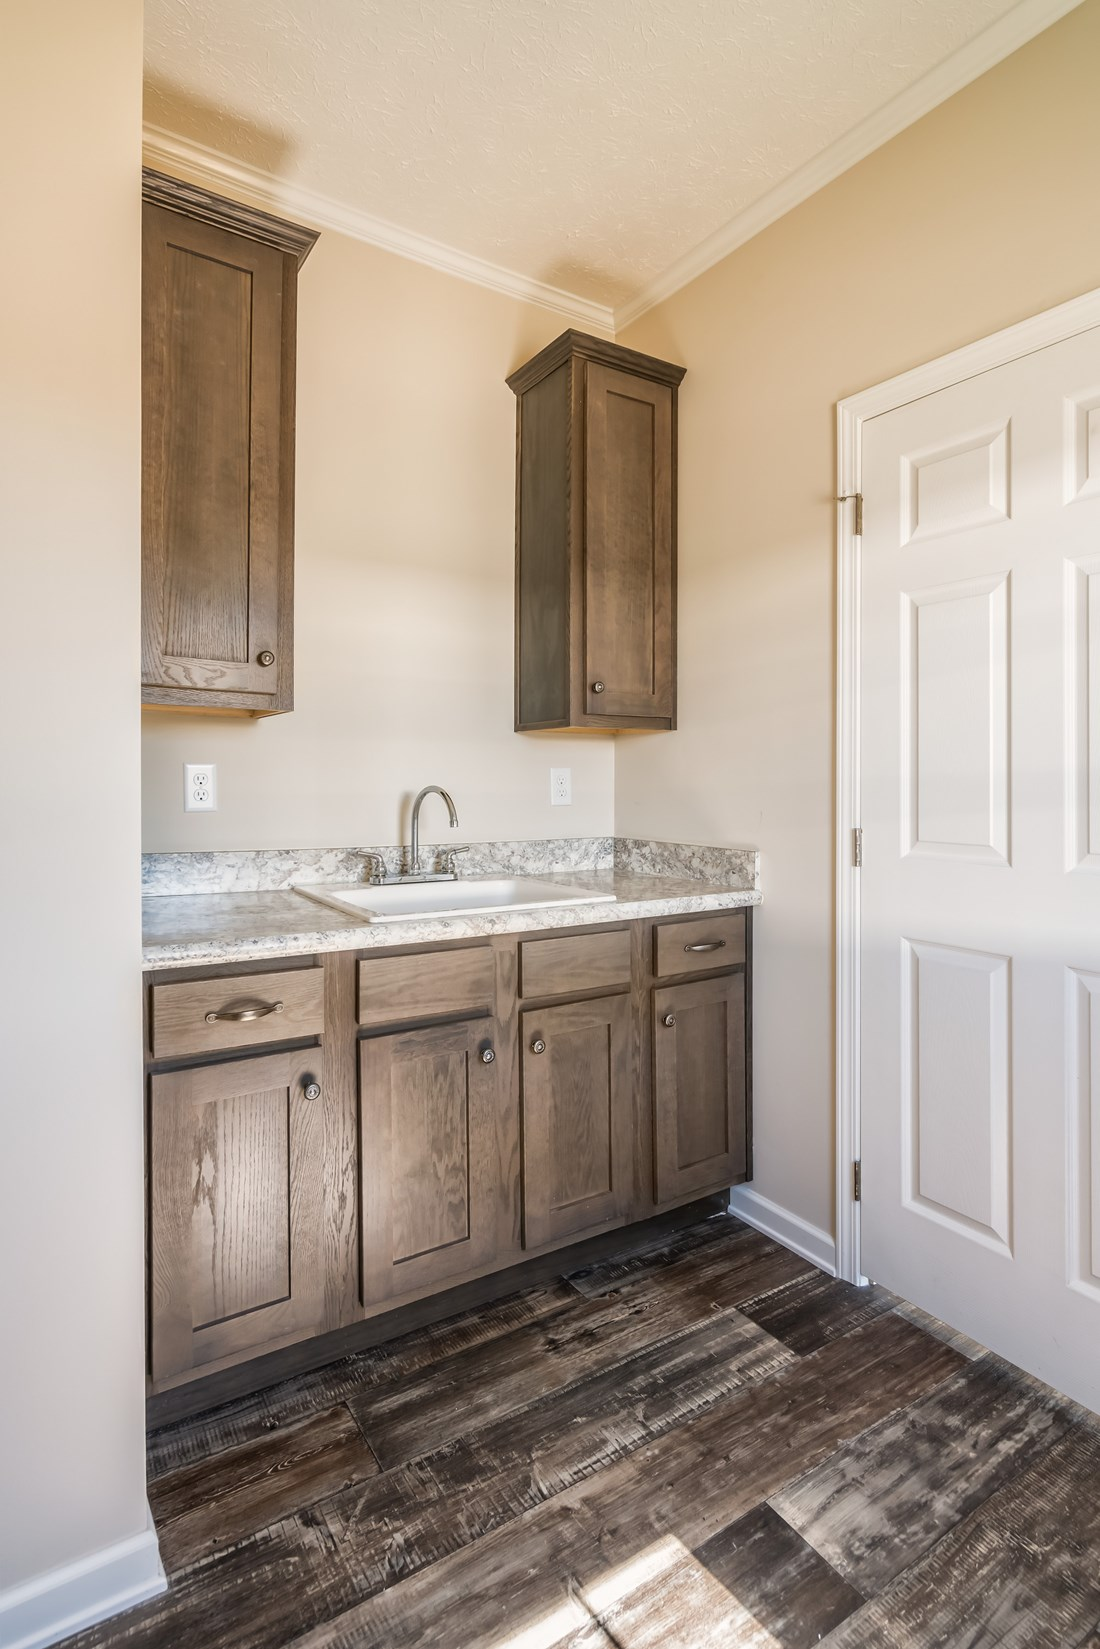 The 3554 JAMESTOWN Utility Room. This Manufactured Mobile Home features 4  bedrooms and 2 baths